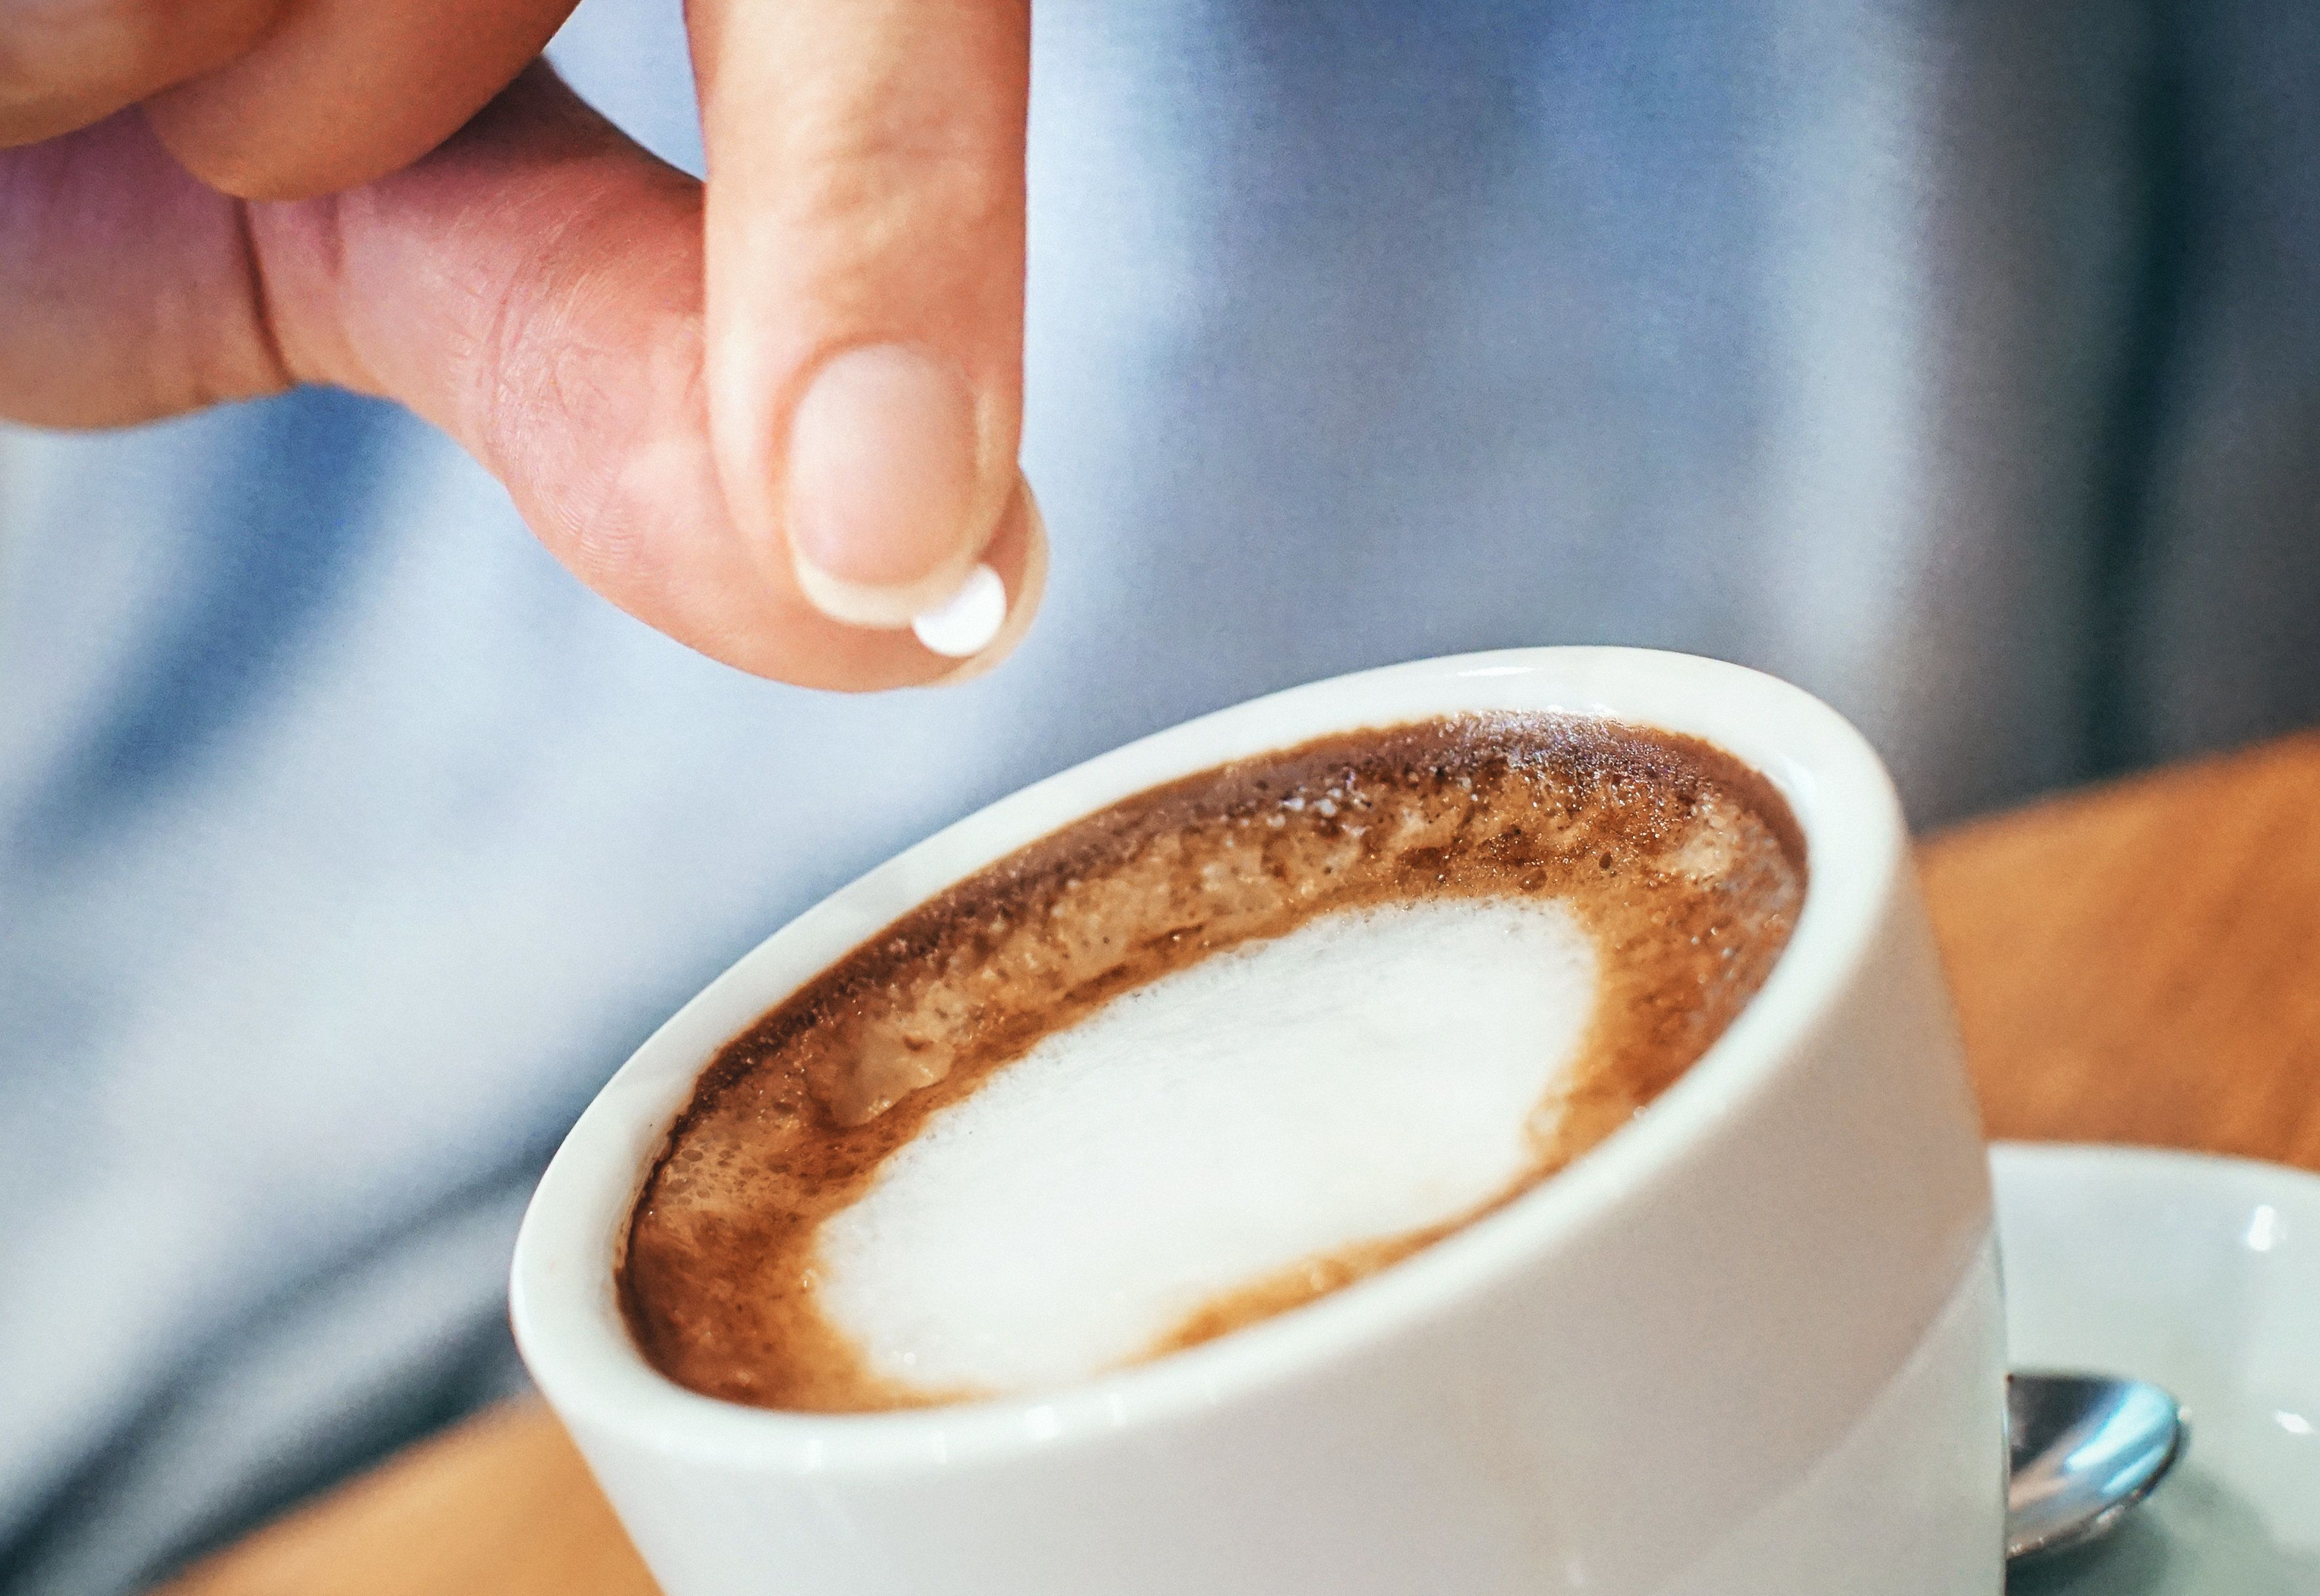 Artificial Sweeteners May Increase Your Risk Of Type 2 Diabetes, Study